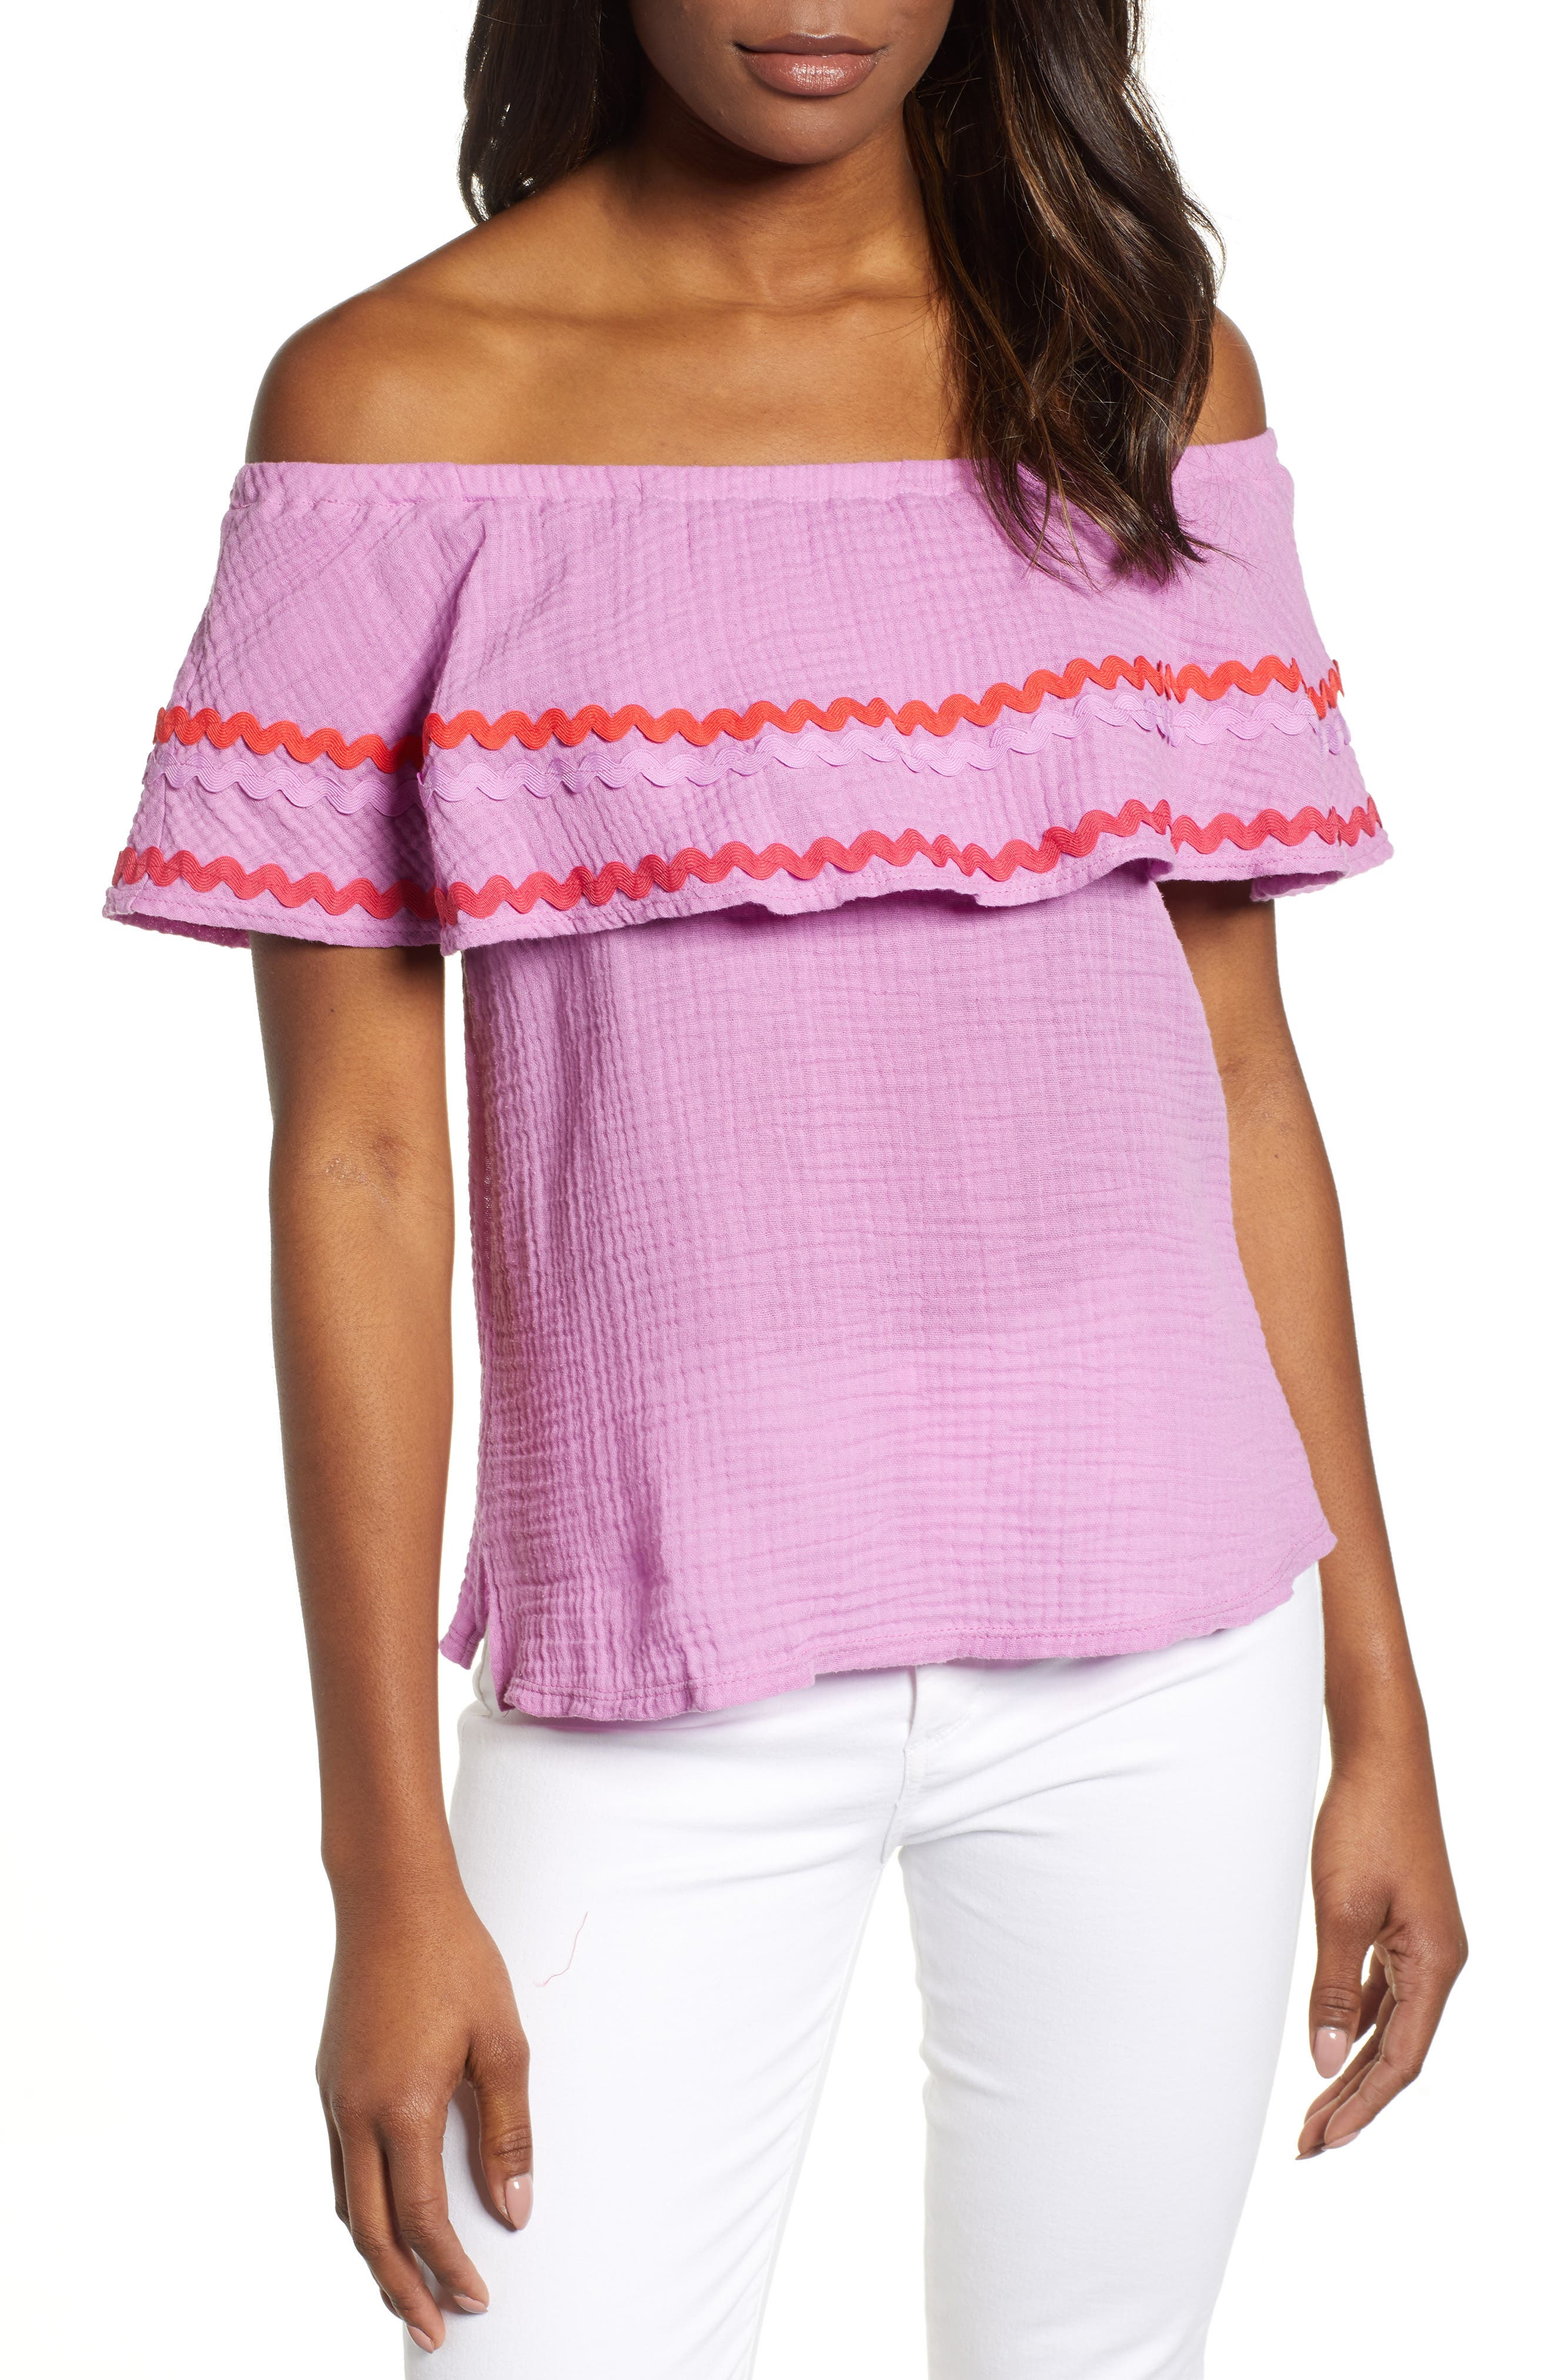 GIBSON x Hi Sugarplum! Santa Fe Rickrack Off the Shoulder Top, Main, color, PEONY